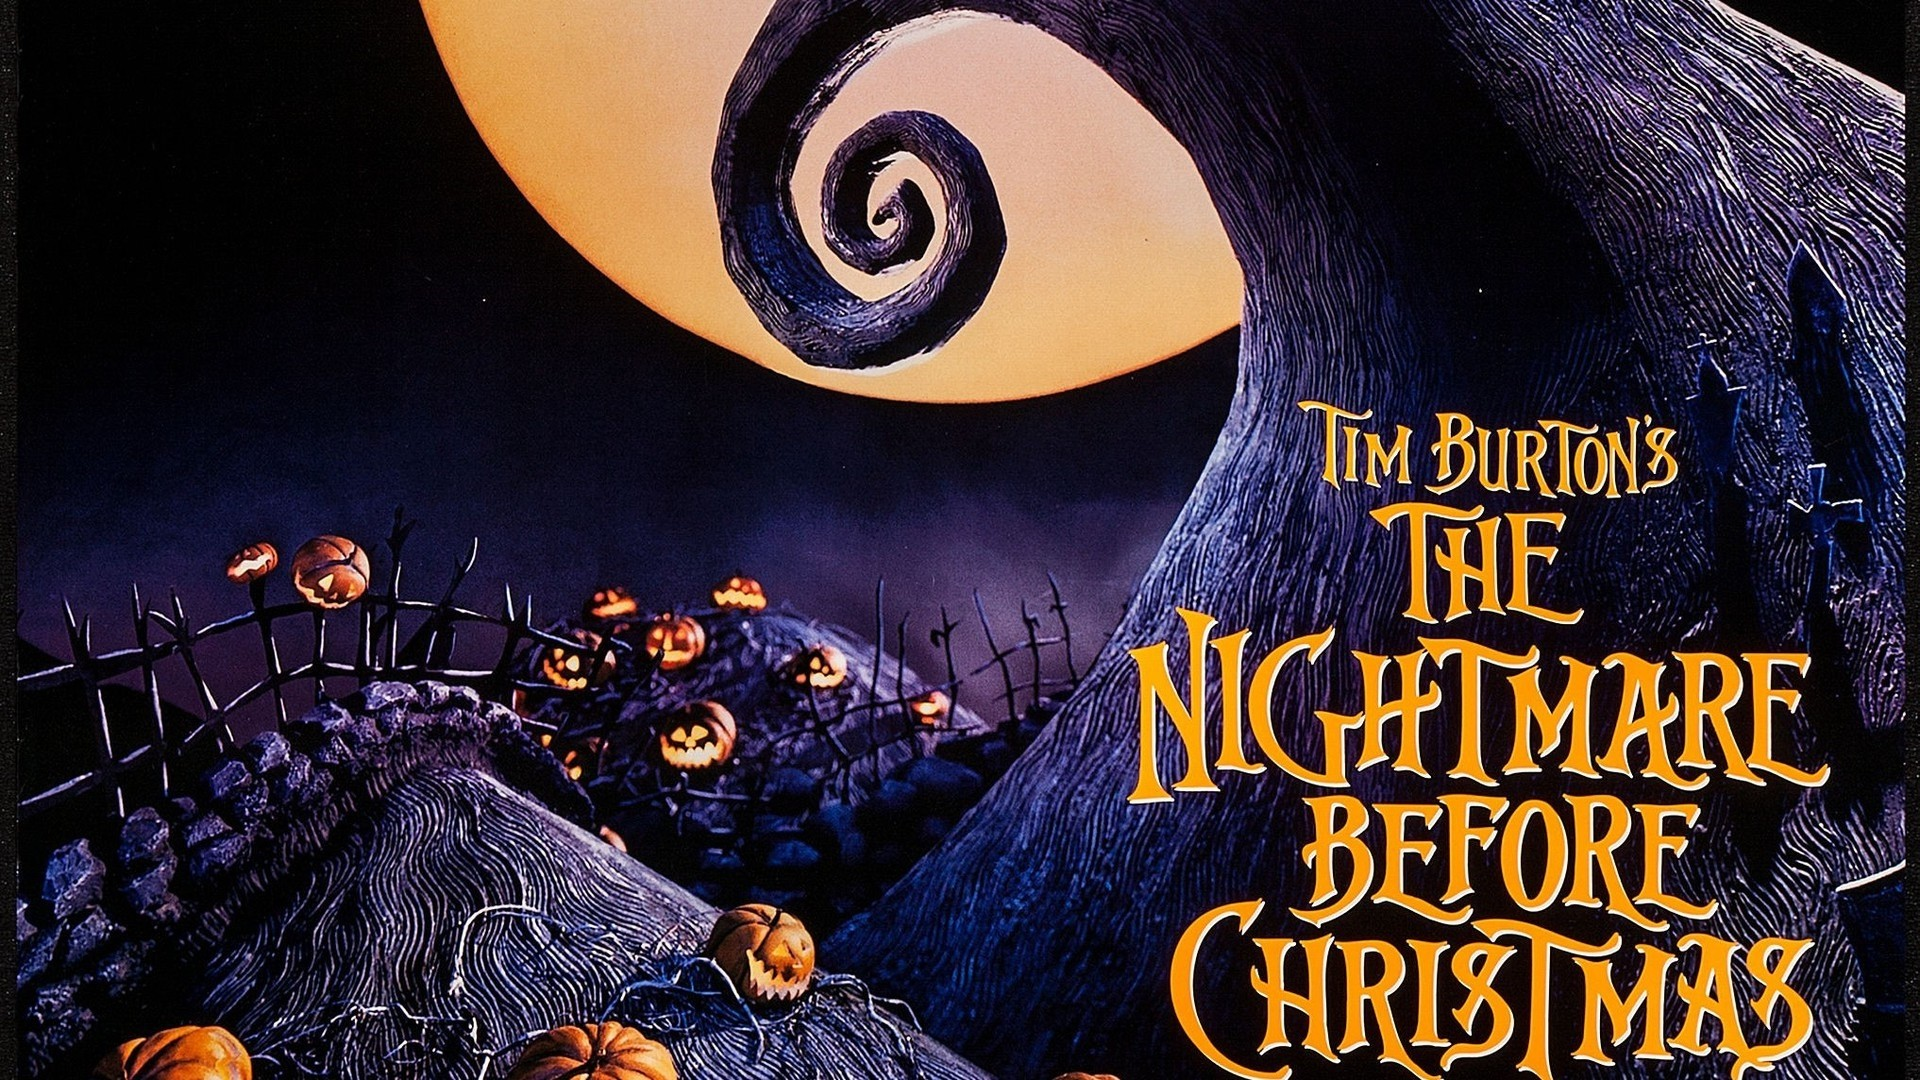 … The Nightmare Before Christmas Wallpaper The nightmare before christmas  movie posters wallpapers …